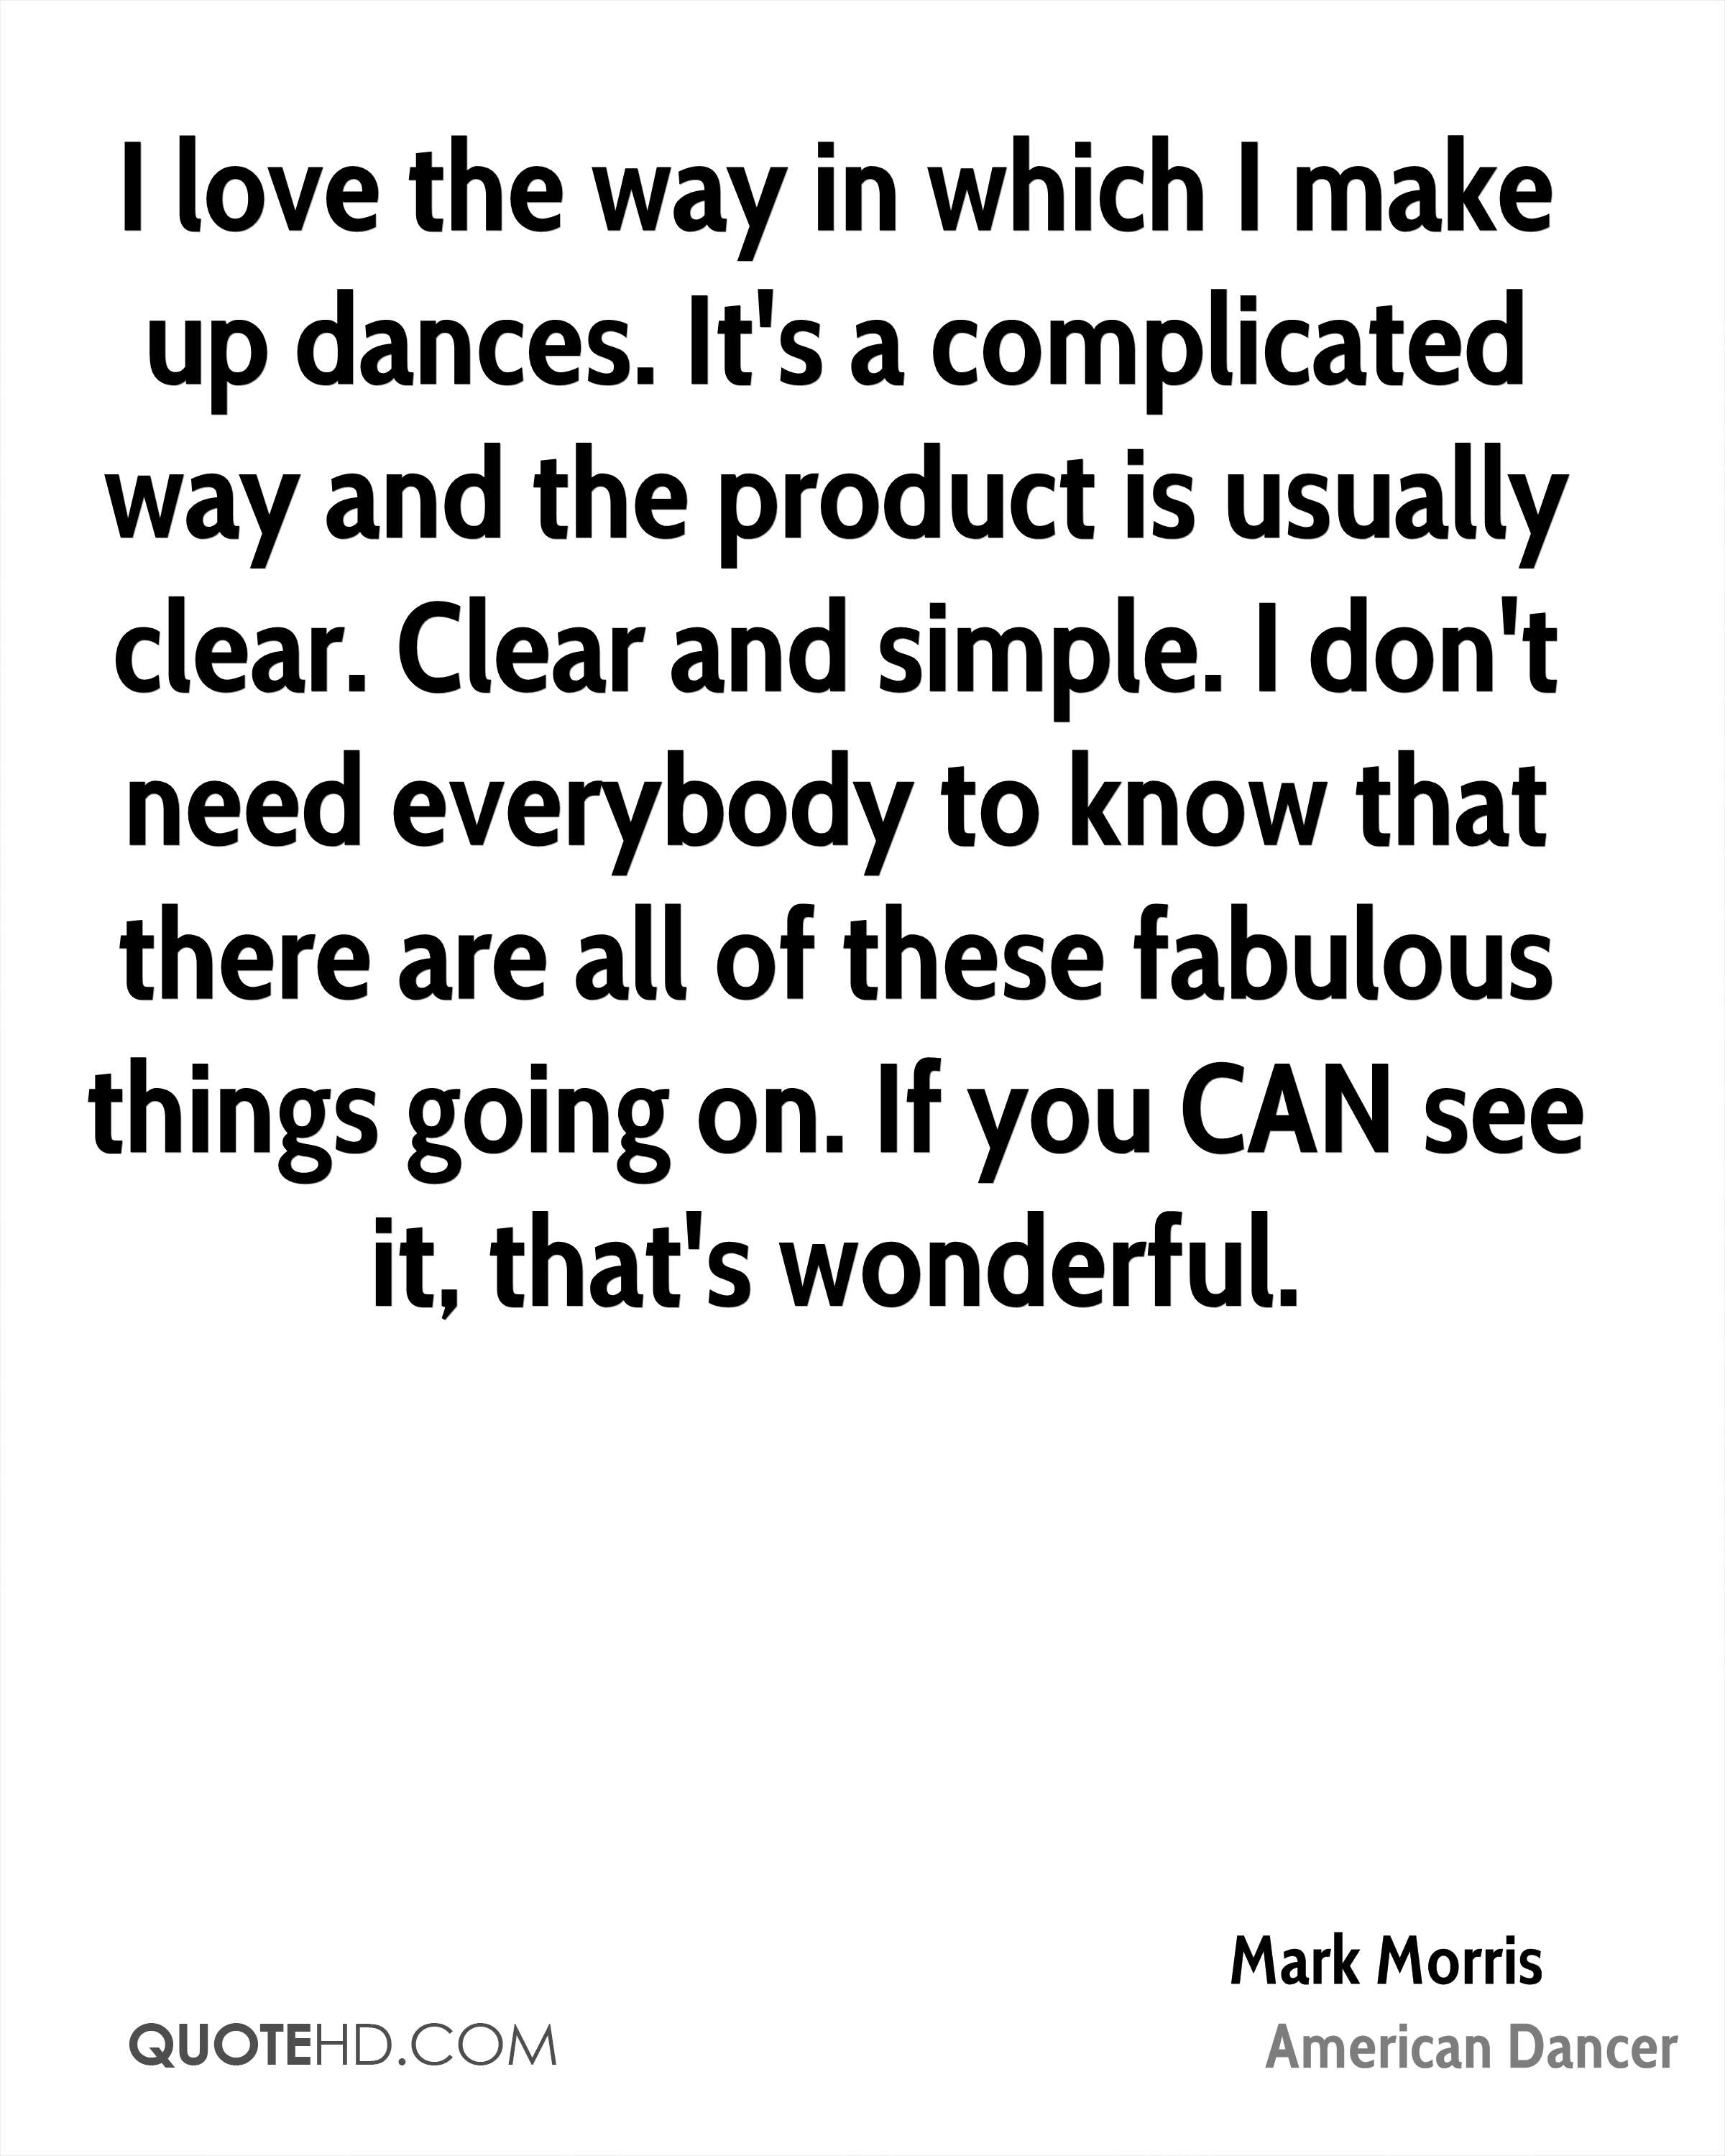 I love the way in which I make up dances. It's a complicated way and the product is usually clear. Clear and simple. I don't need everybody to know that there are all of these fabulous things going on. If you CAN see it, that's wonderful.